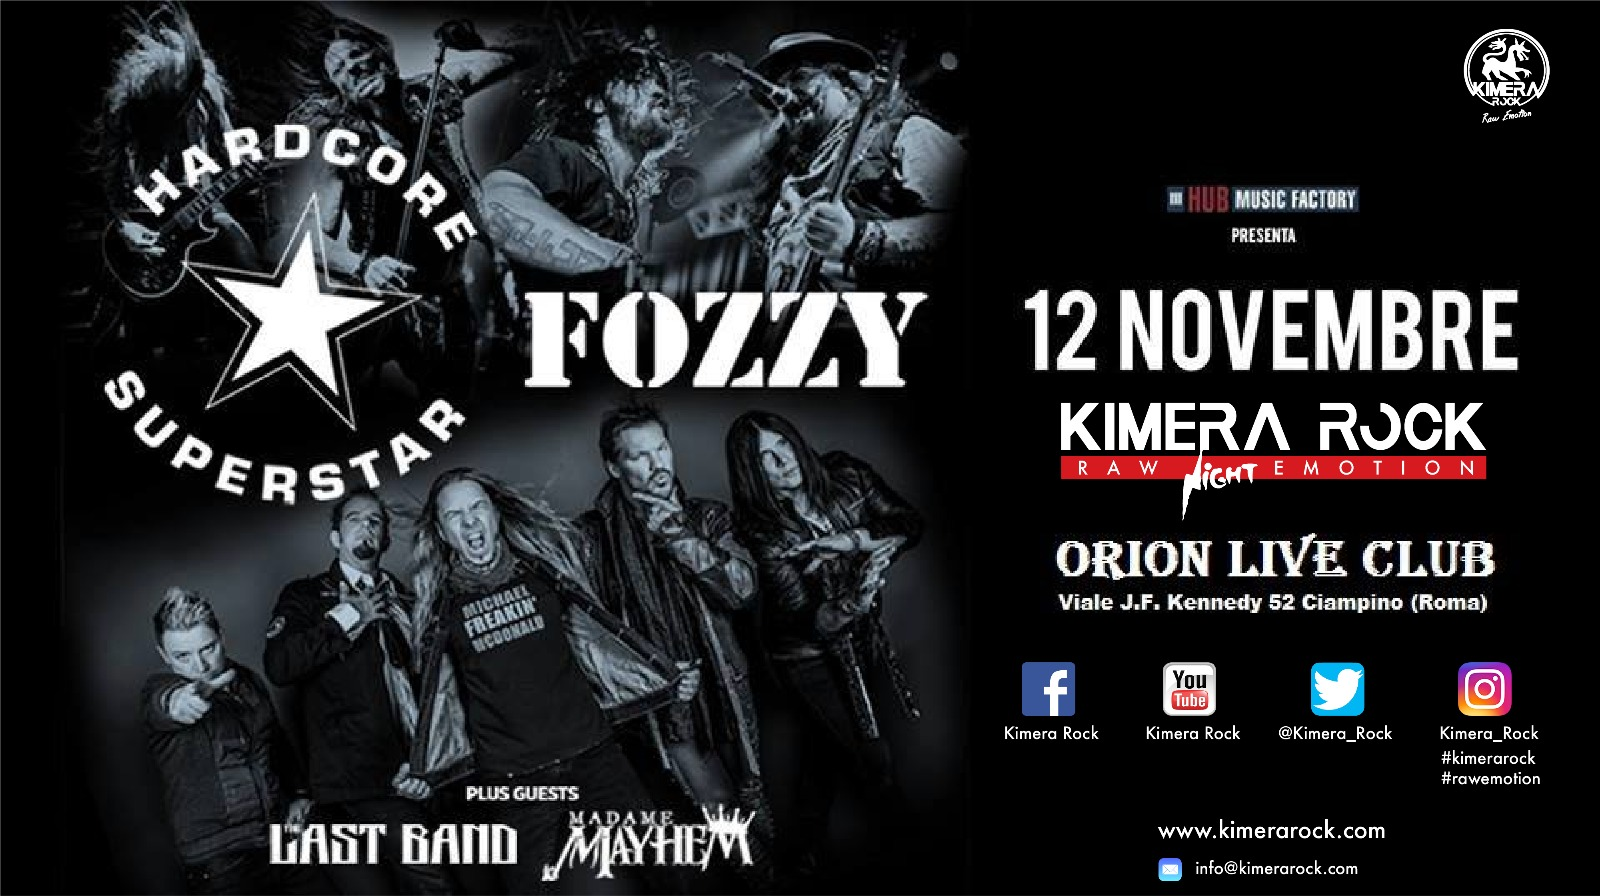 Hardcore Superstar - Fozzy - Orion Live Club - Tour 2017 - Promo